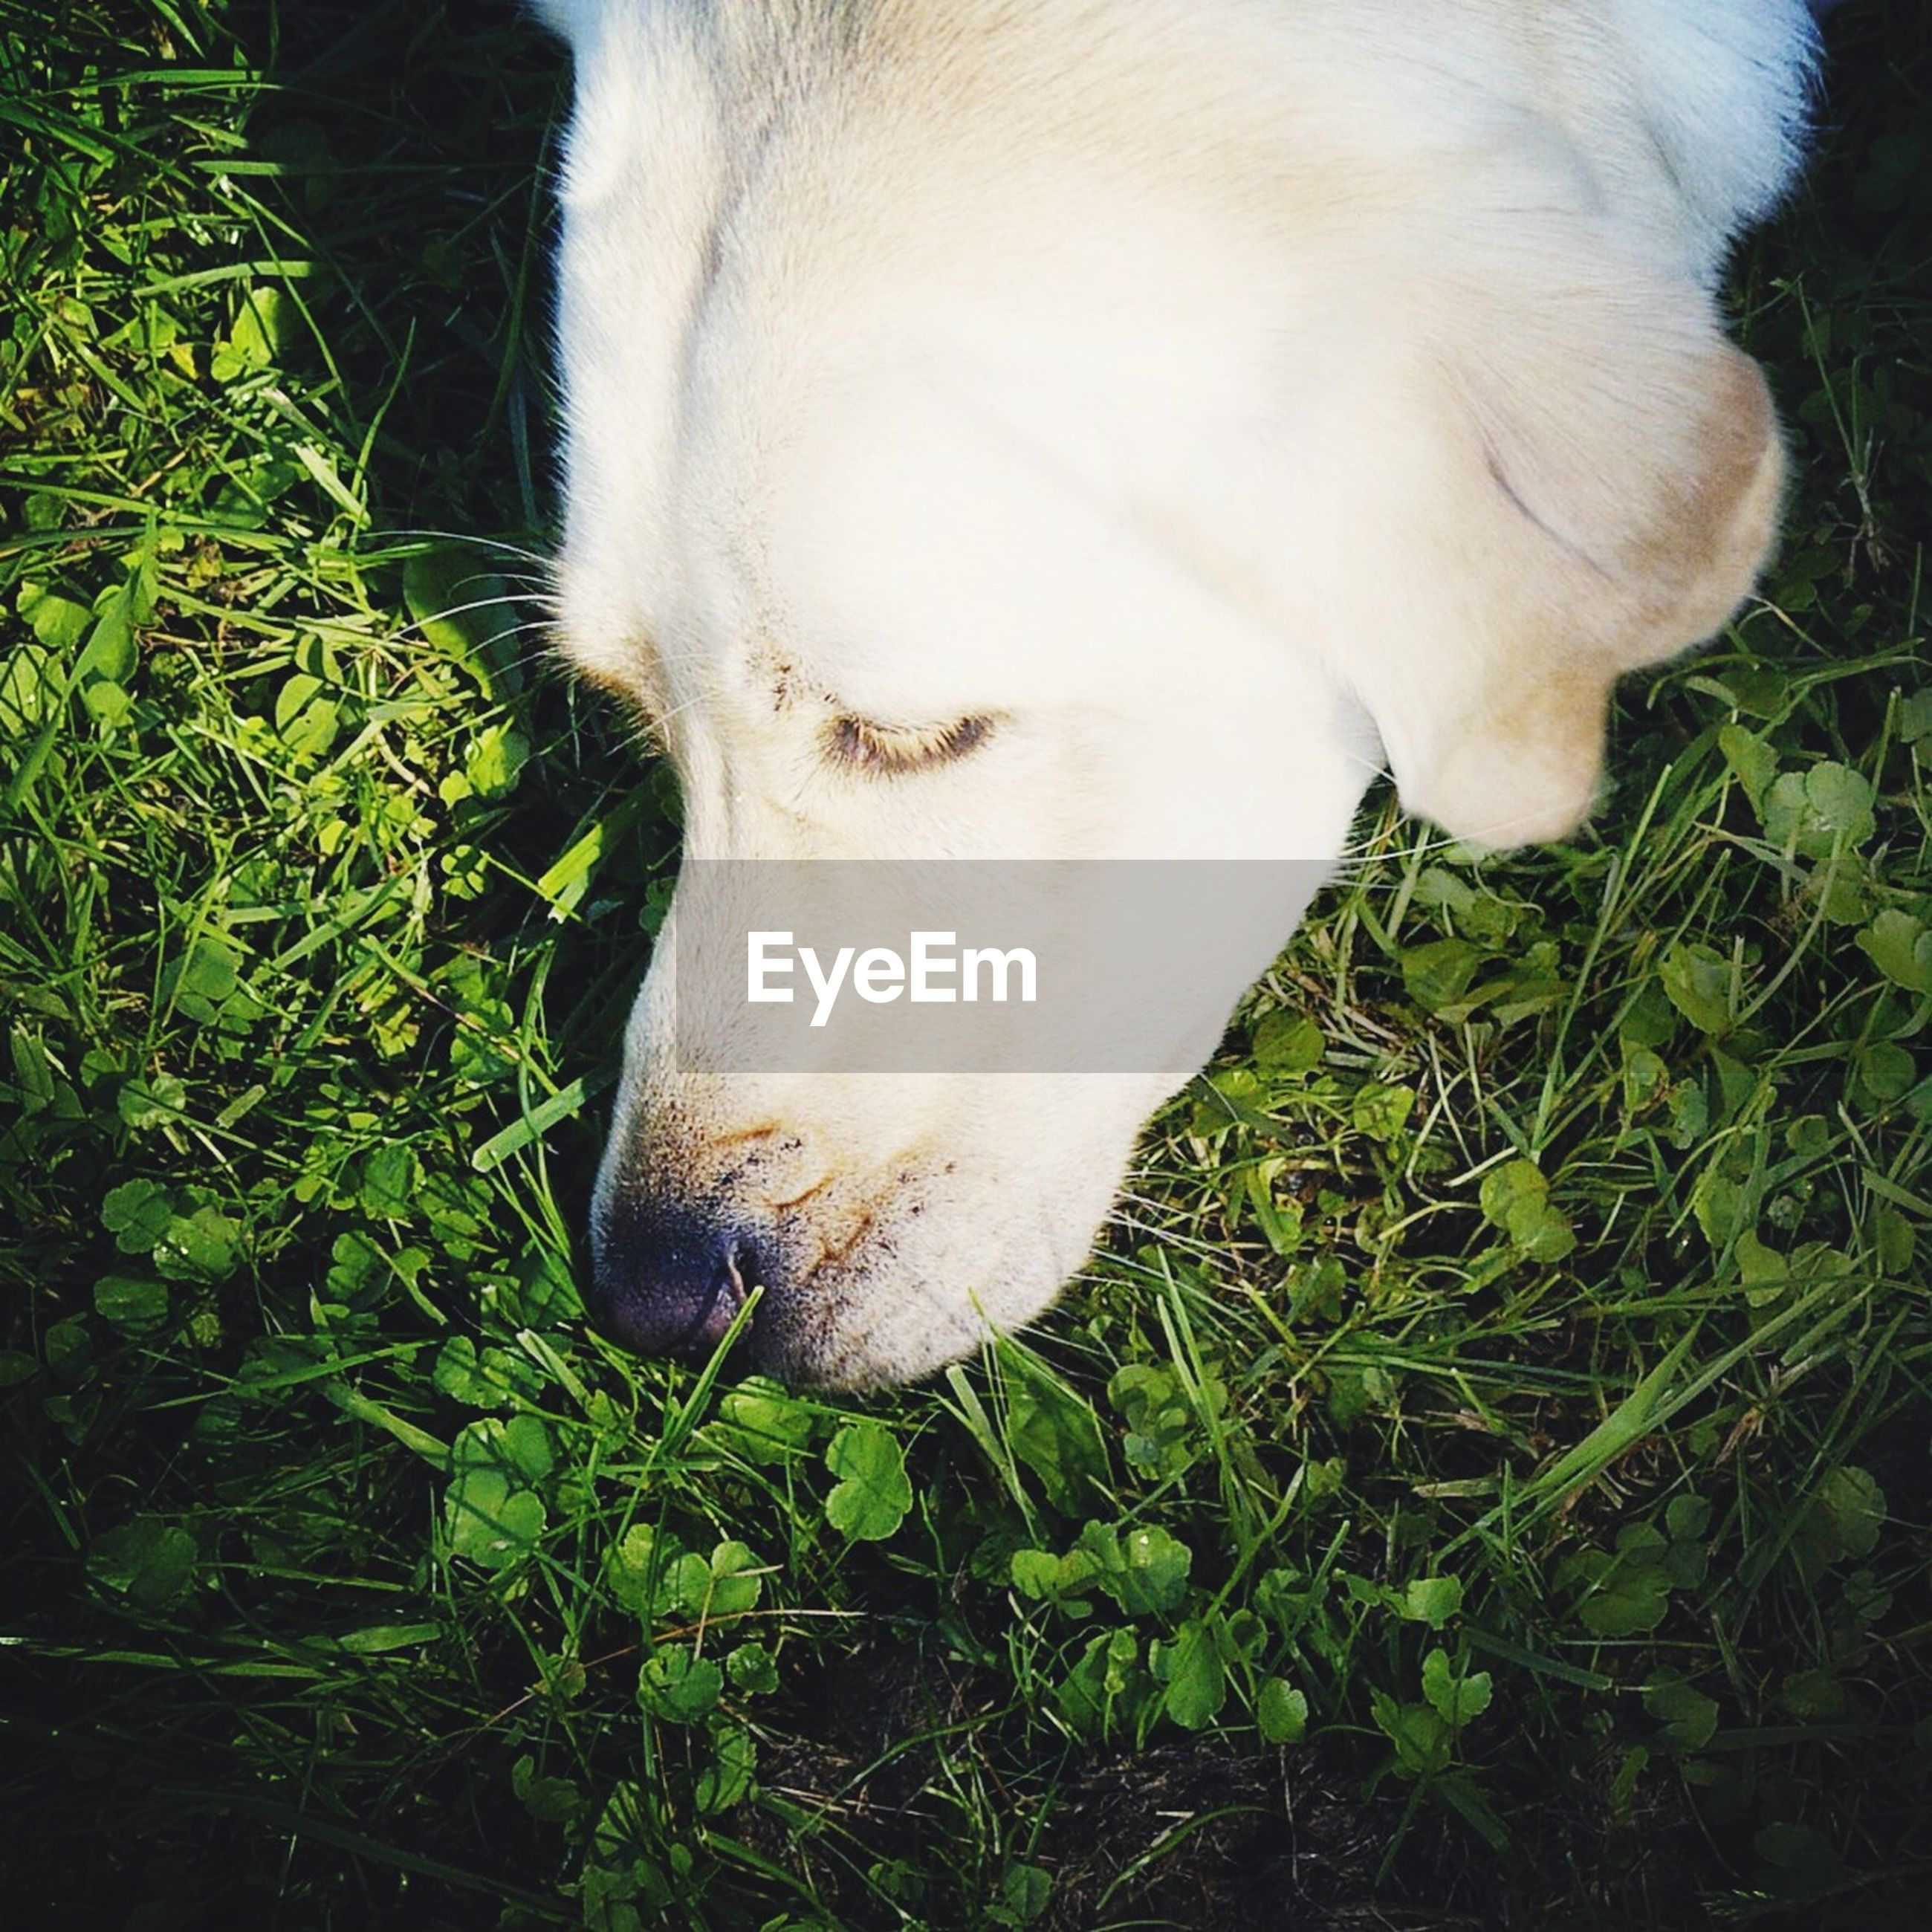 grass, field, domestic animals, grassy, close-up, one animal, animal themes, mammal, white color, dog, pets, high angle view, nature, day, standing, one person, outdoors, green color, animal head, relaxation